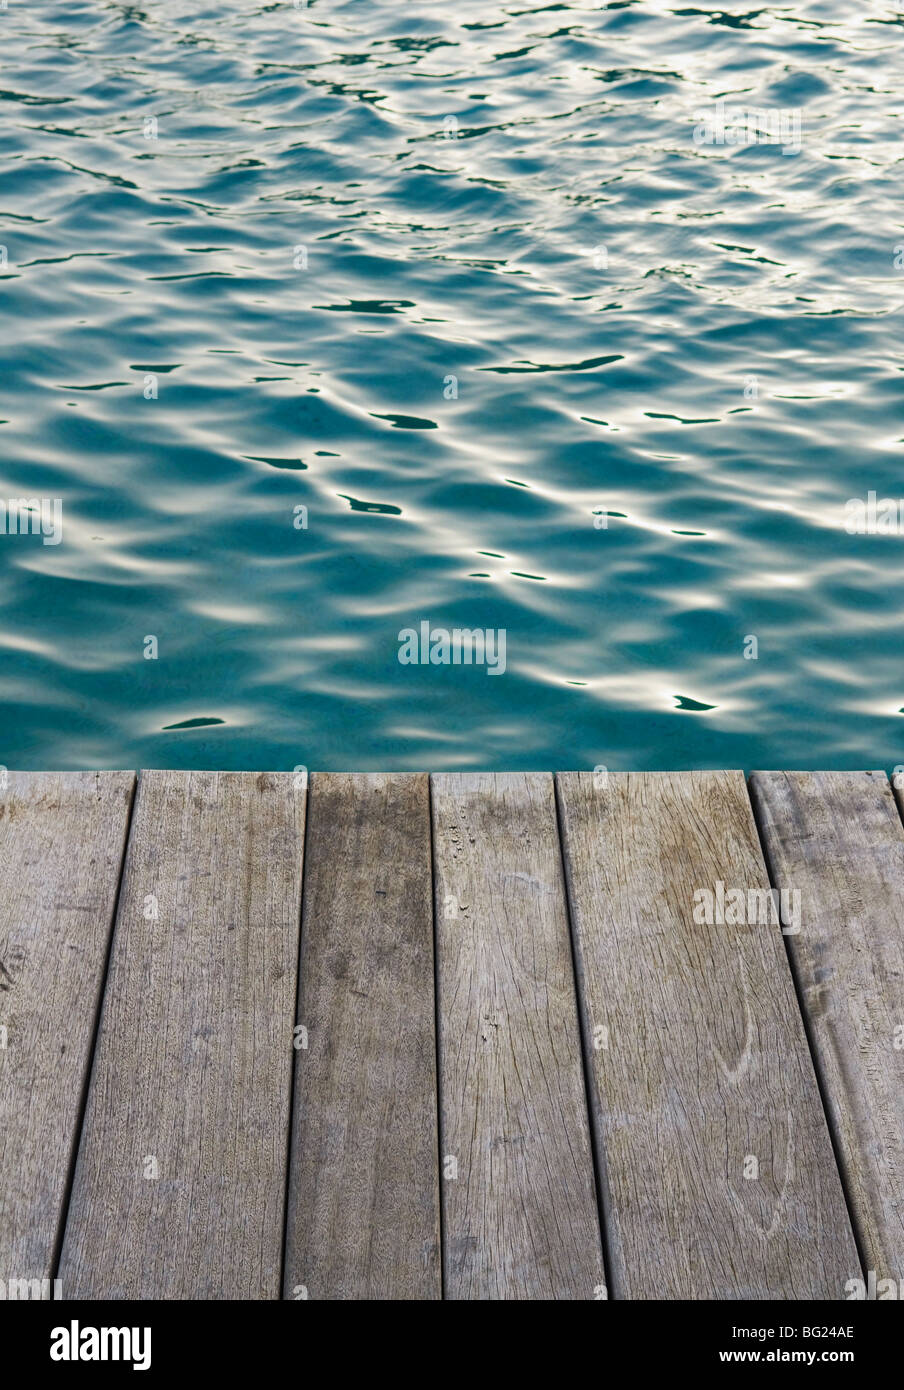 Dock on the water Stock Photo